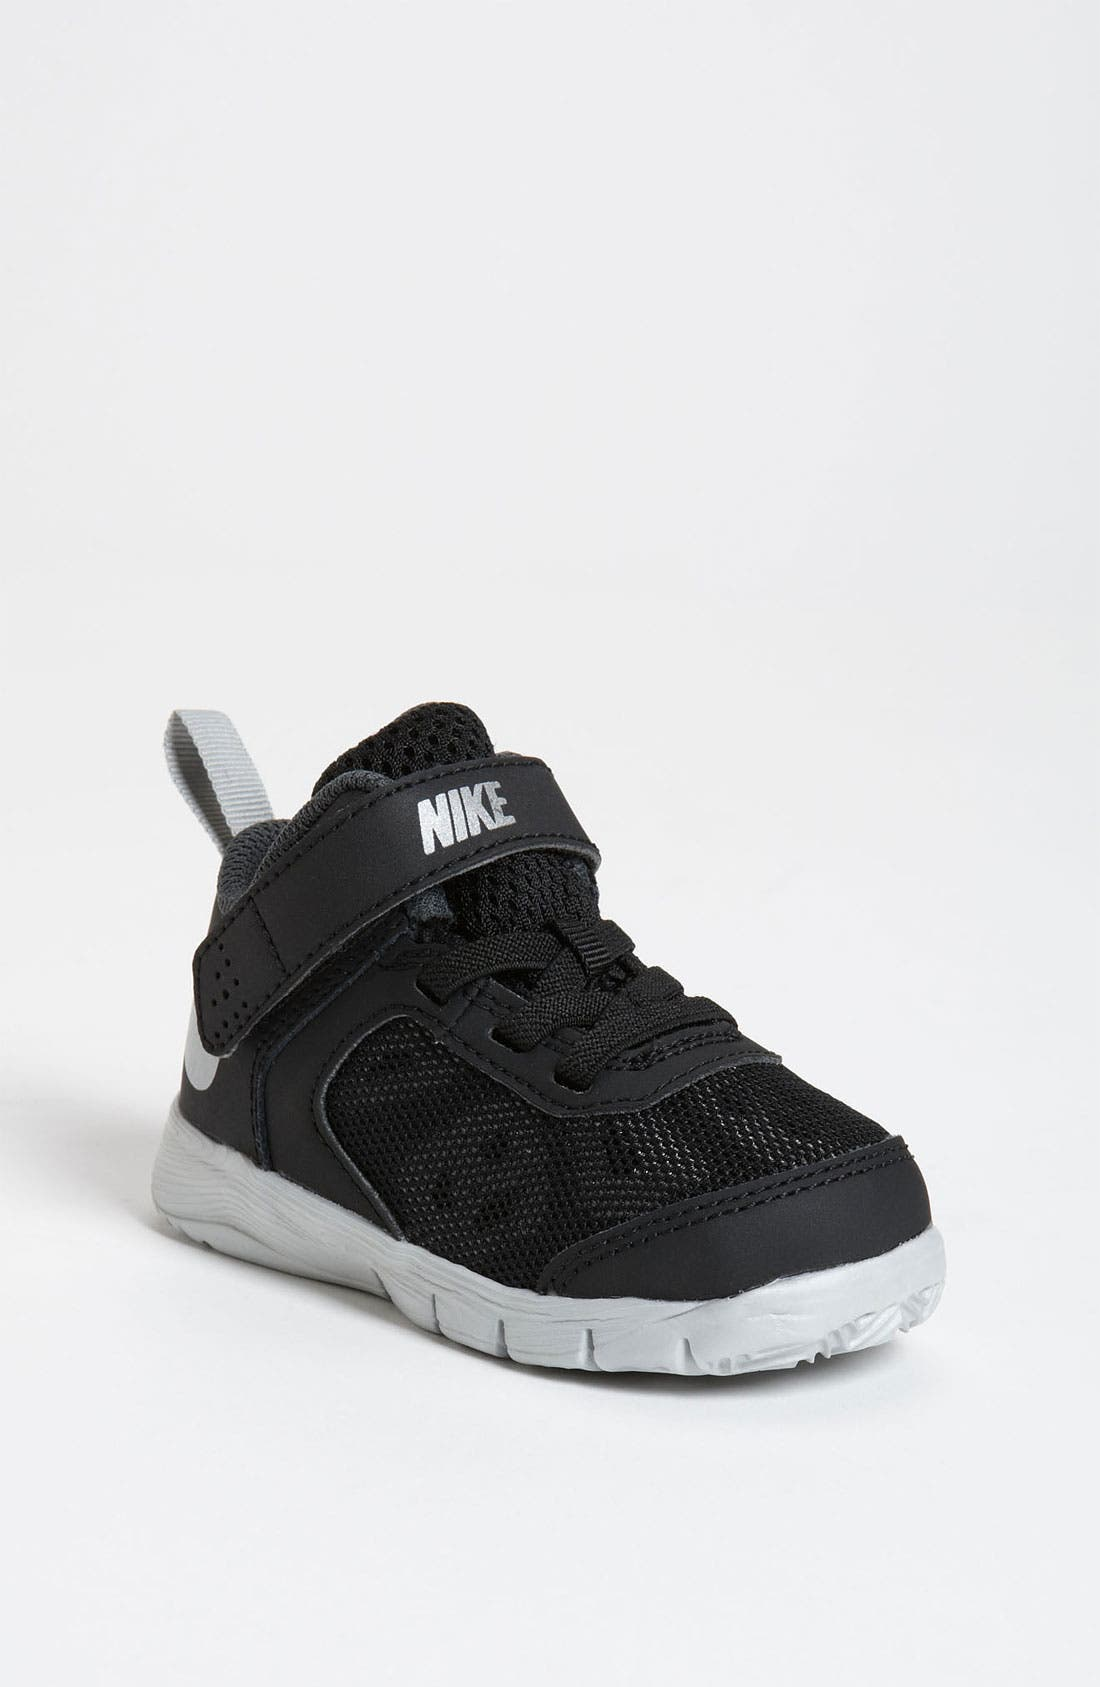 Alternate Image 1 Selected - Nike 'Fusion' Basketball Shoe (Baby, Walker, Toddler)